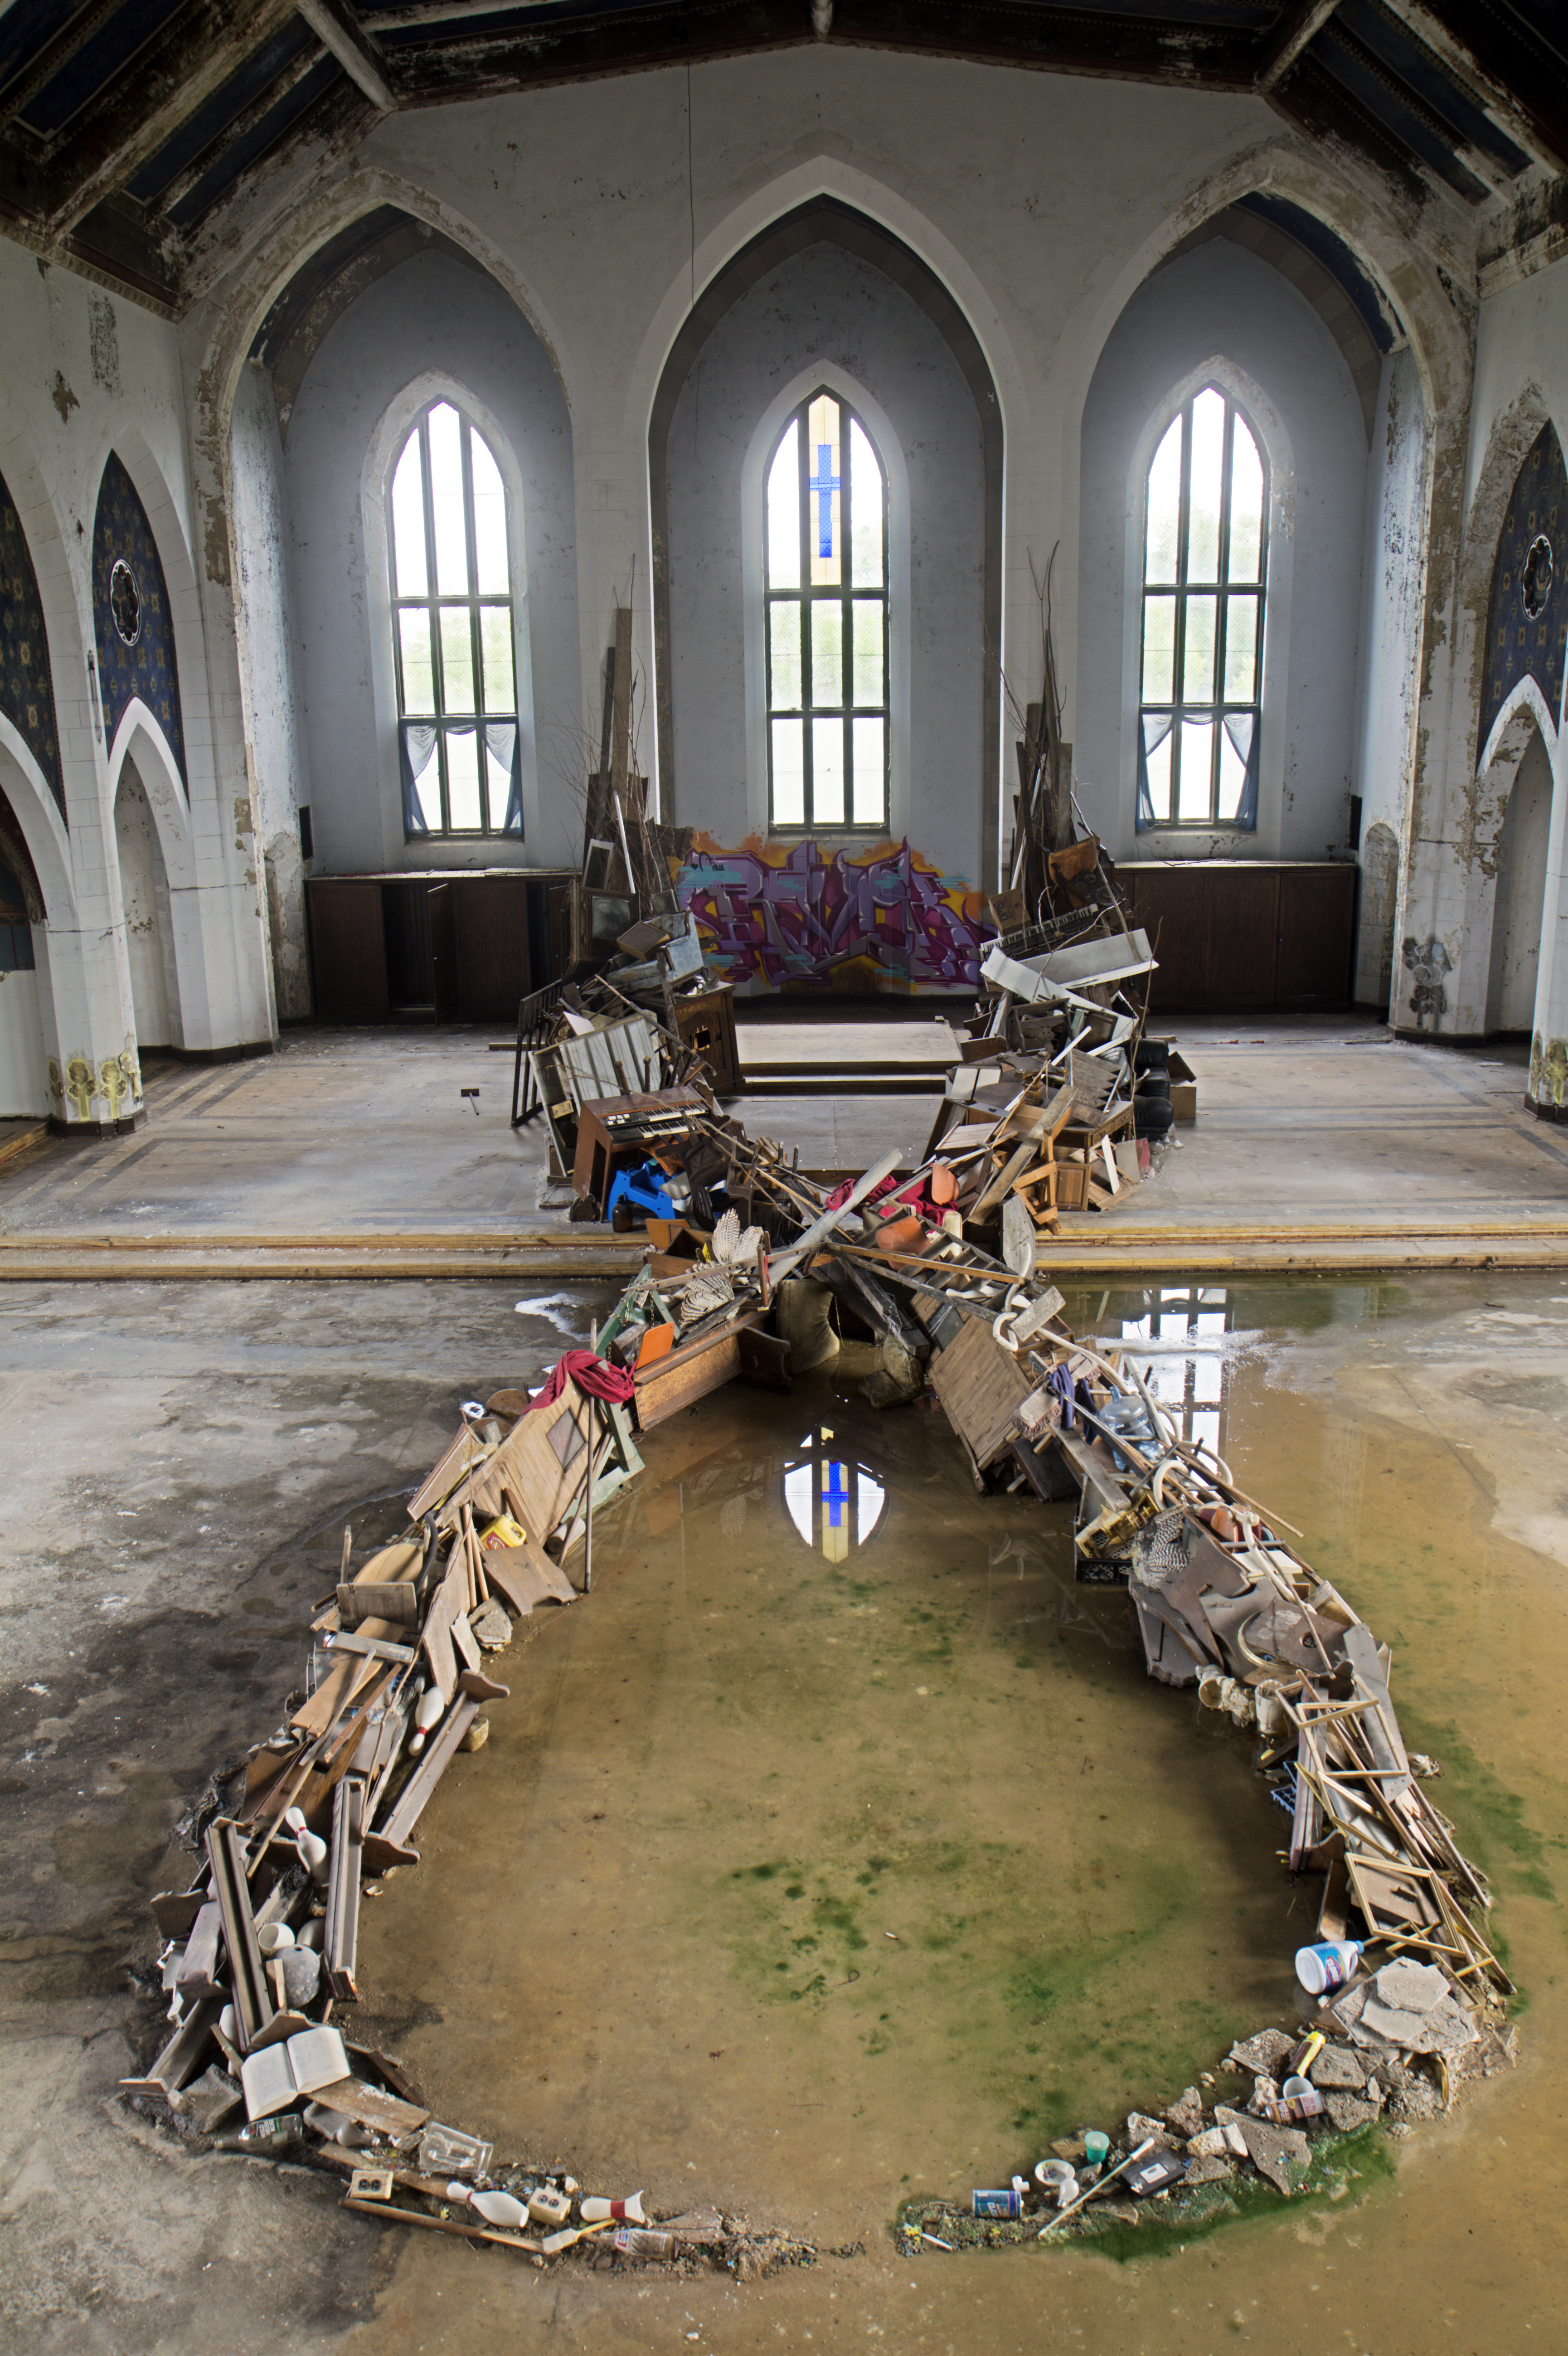 Mysterious Installation Found Inside Abandoned Church In